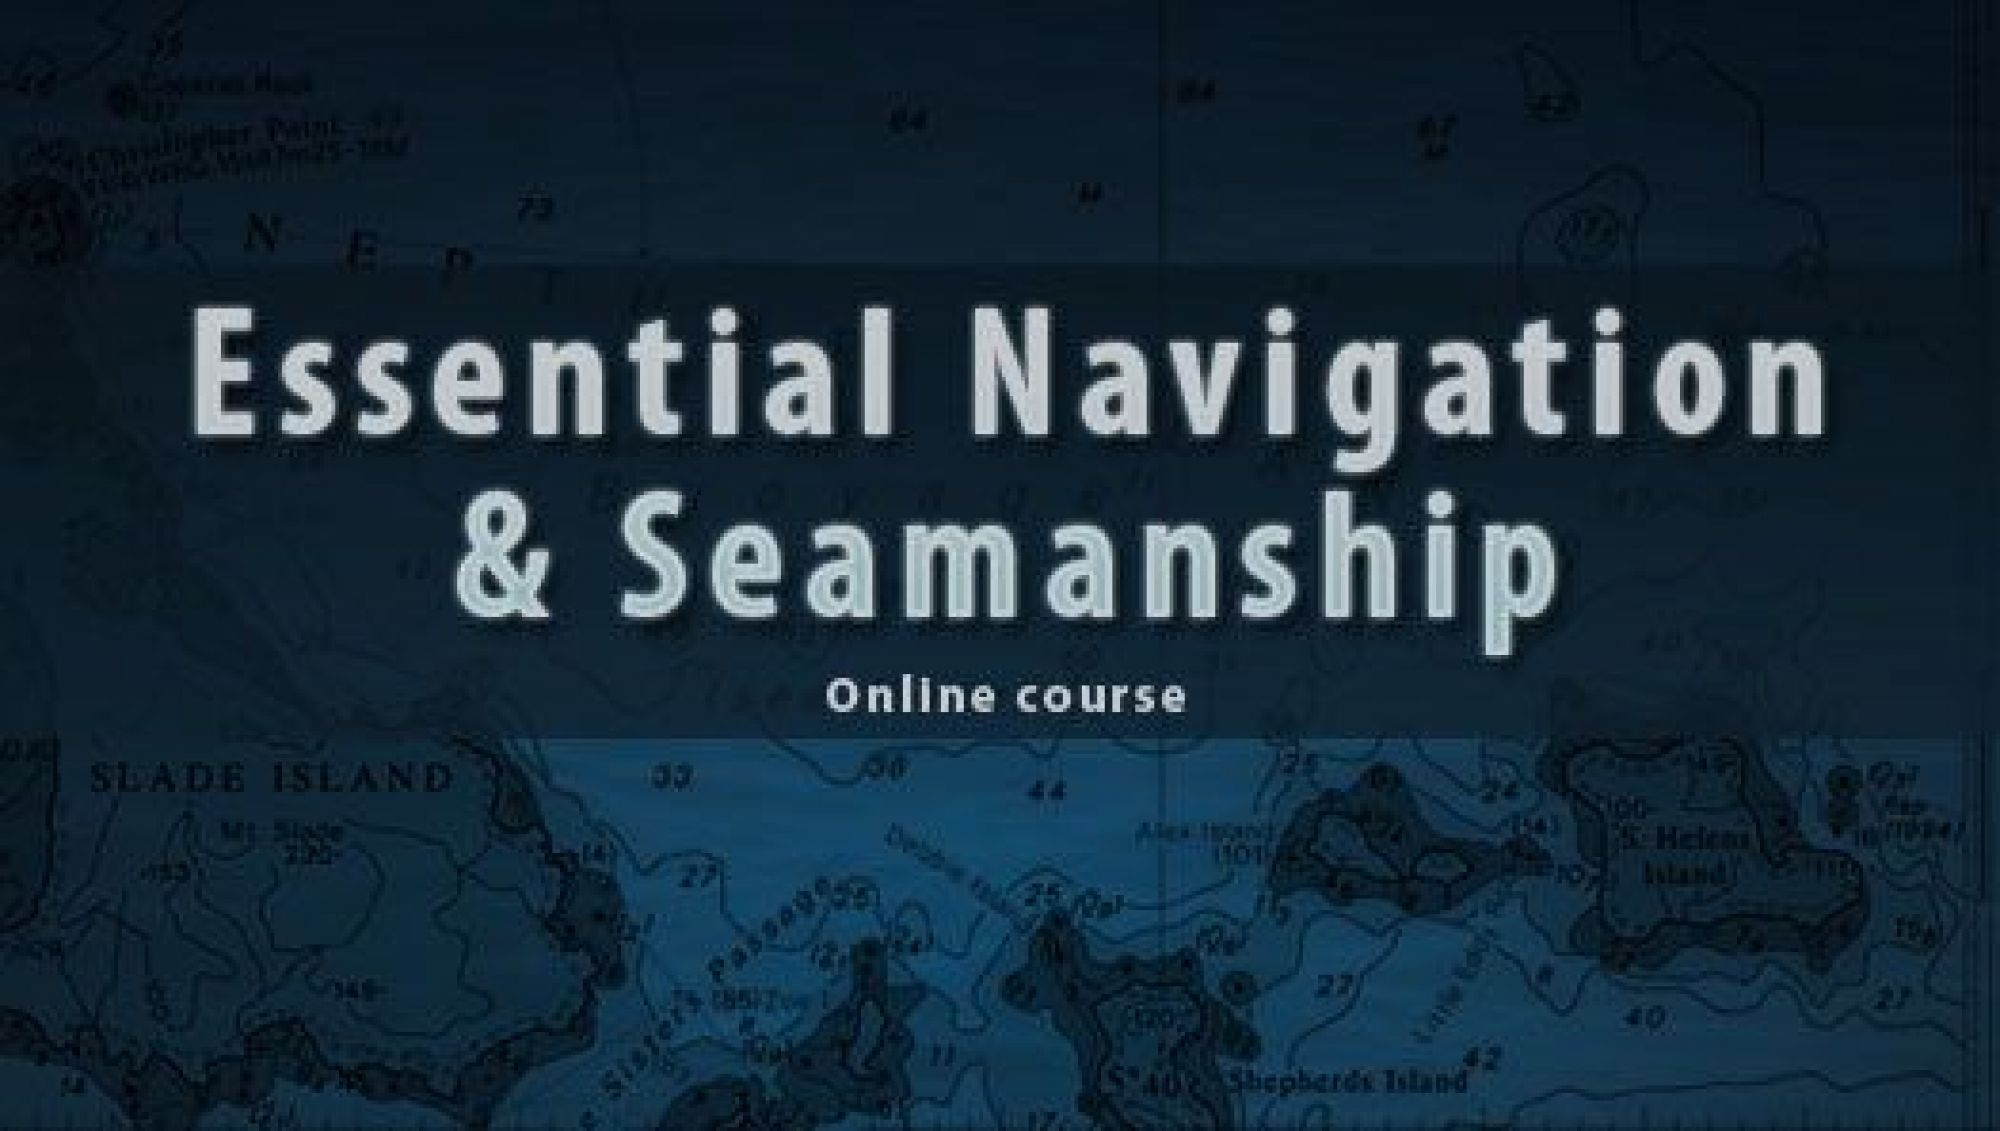 Essential Navigation & Seamanship Training Course